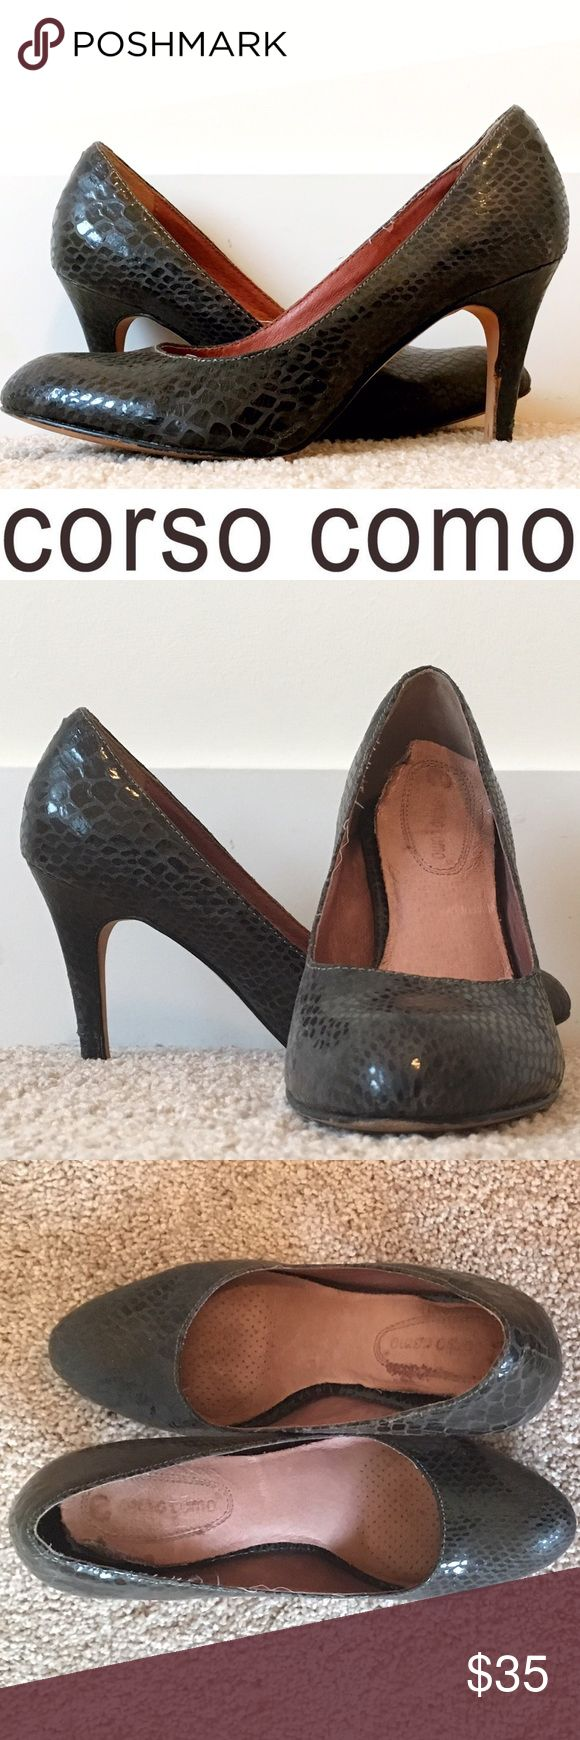 "'Del' Faux Snakeskin Pumps Gorfeous charcoal  pattern heels go with any outfit and have seen me through countless job interviews and dinner dates! Run about 1/4 size larger than marked, so the 7M fits like a small 7.5M. Heel approx 3.25"". Well-loved condition! Corso Como Shoes Heels"